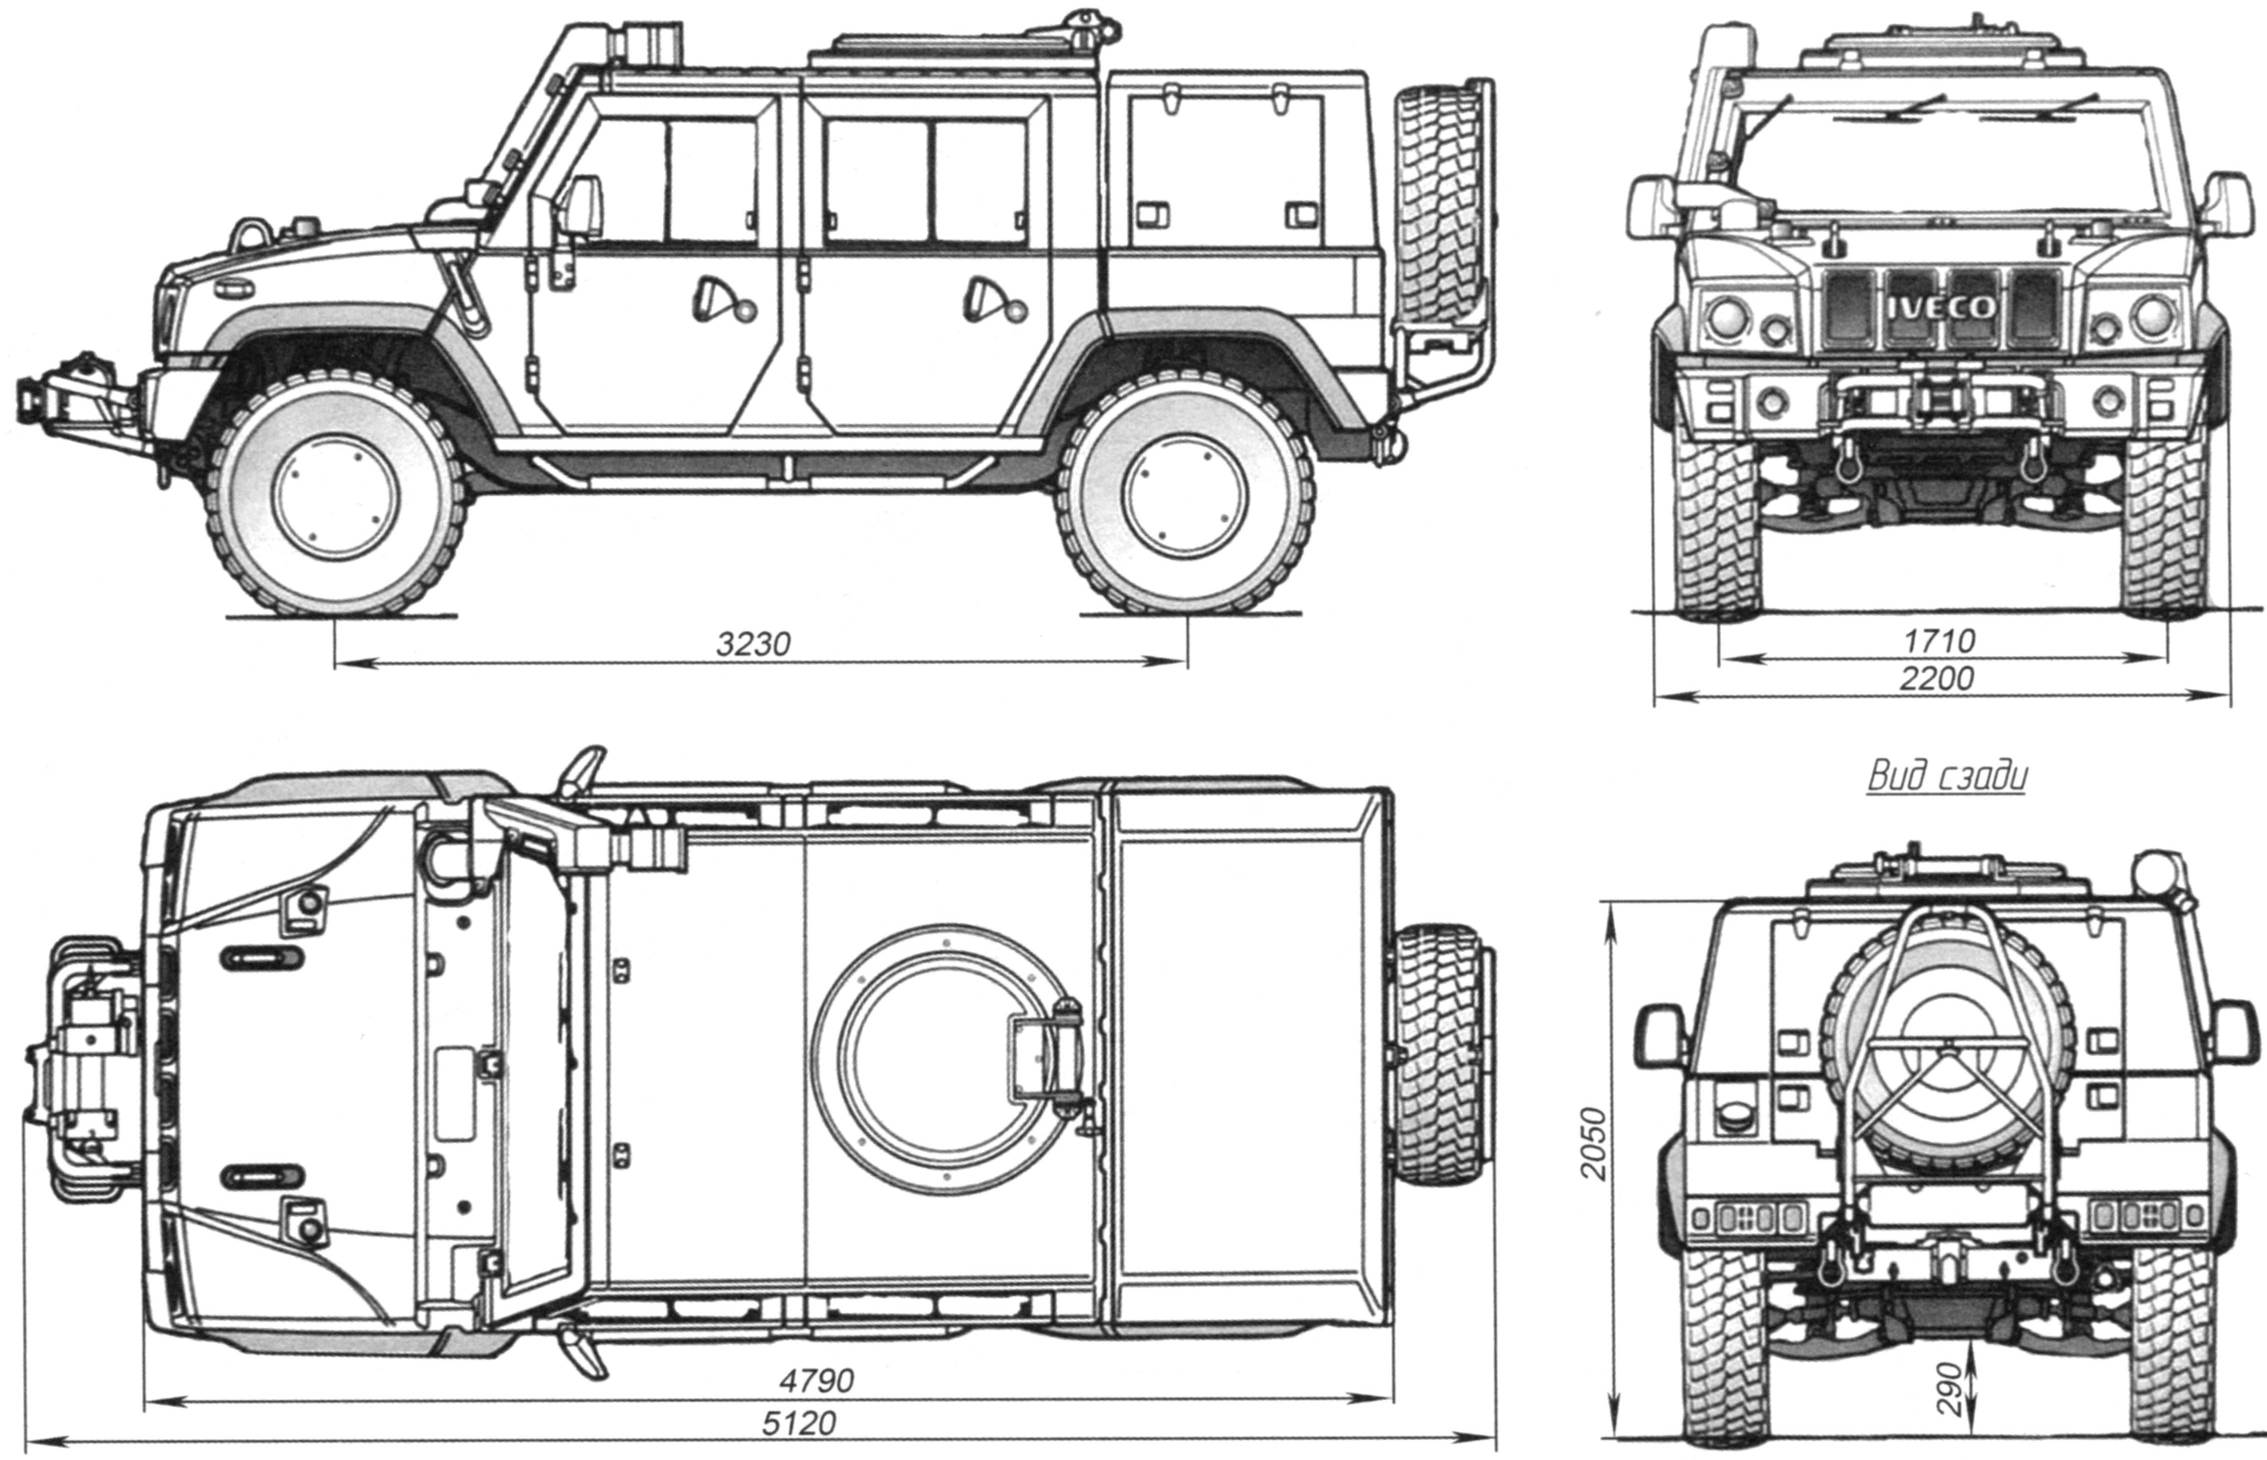 Iveco LMV blueprint